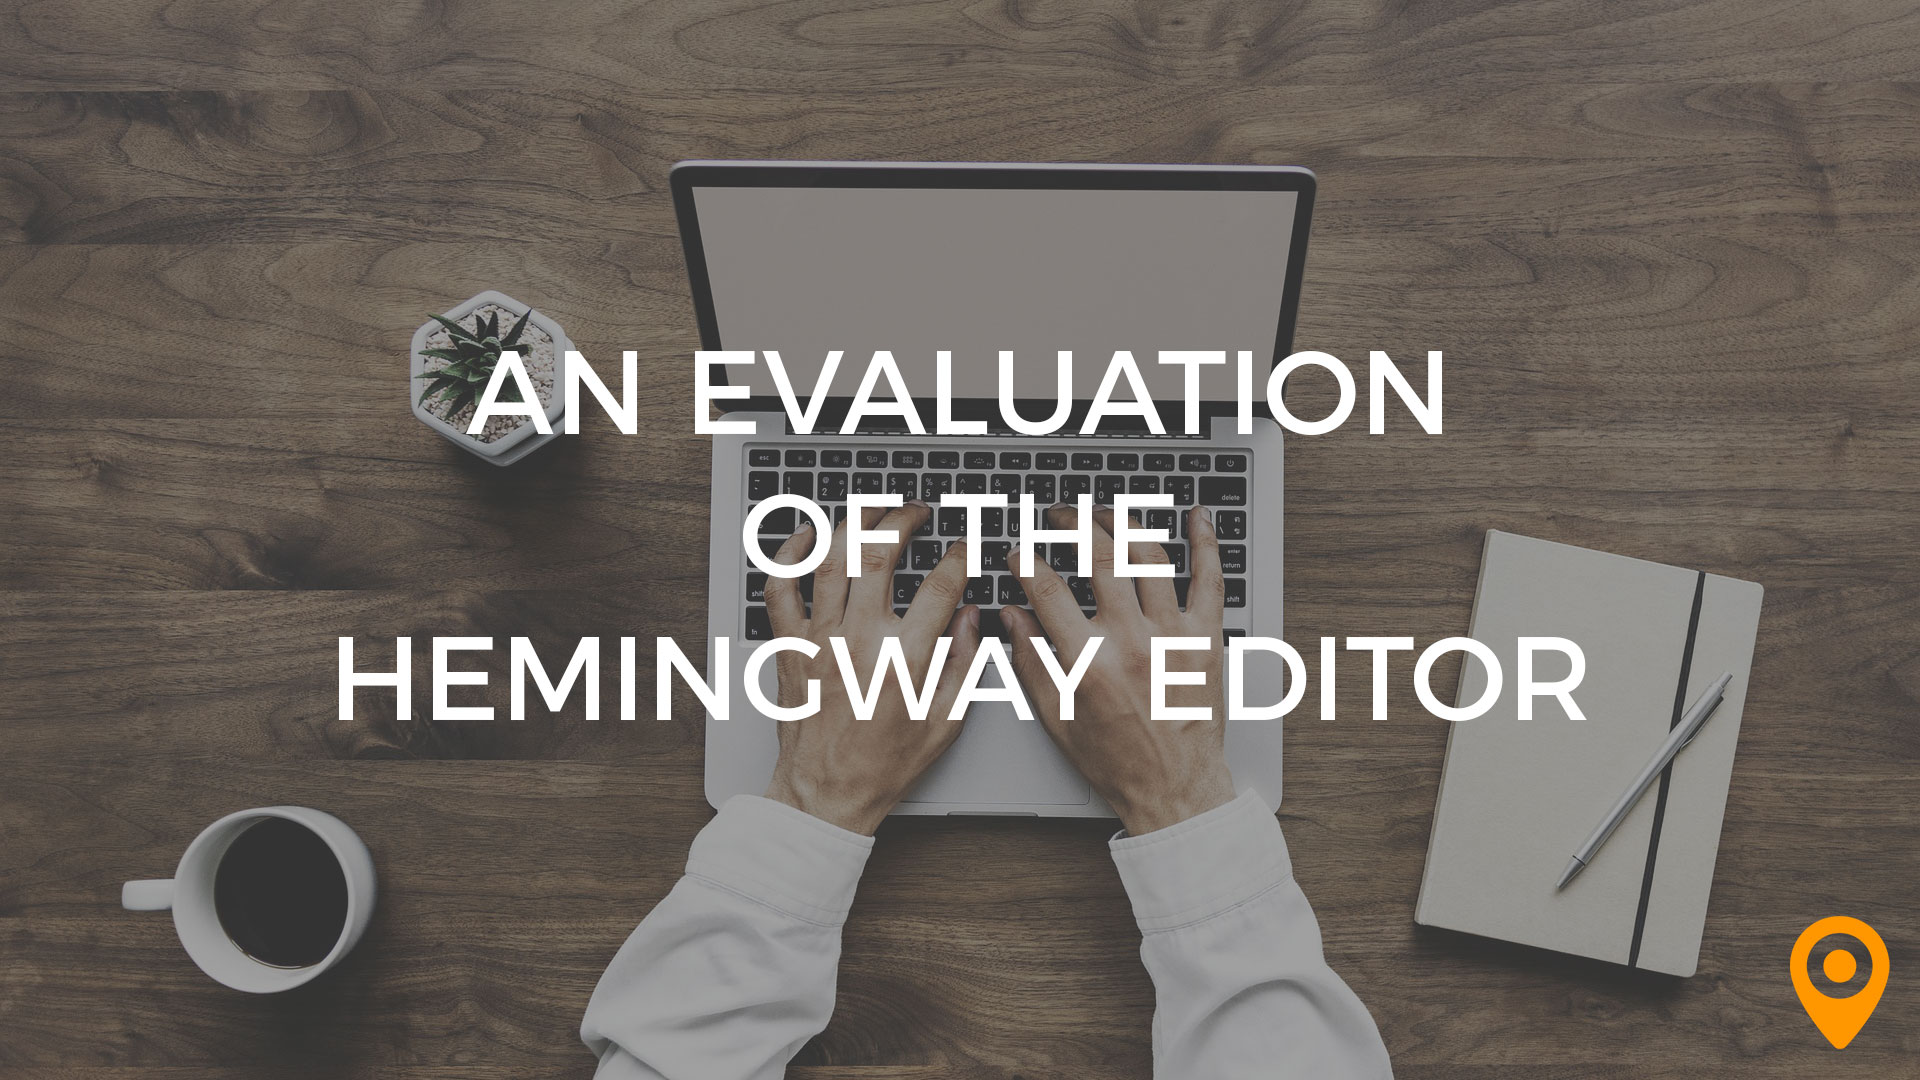 An Evaluation of the Hemingway Editor